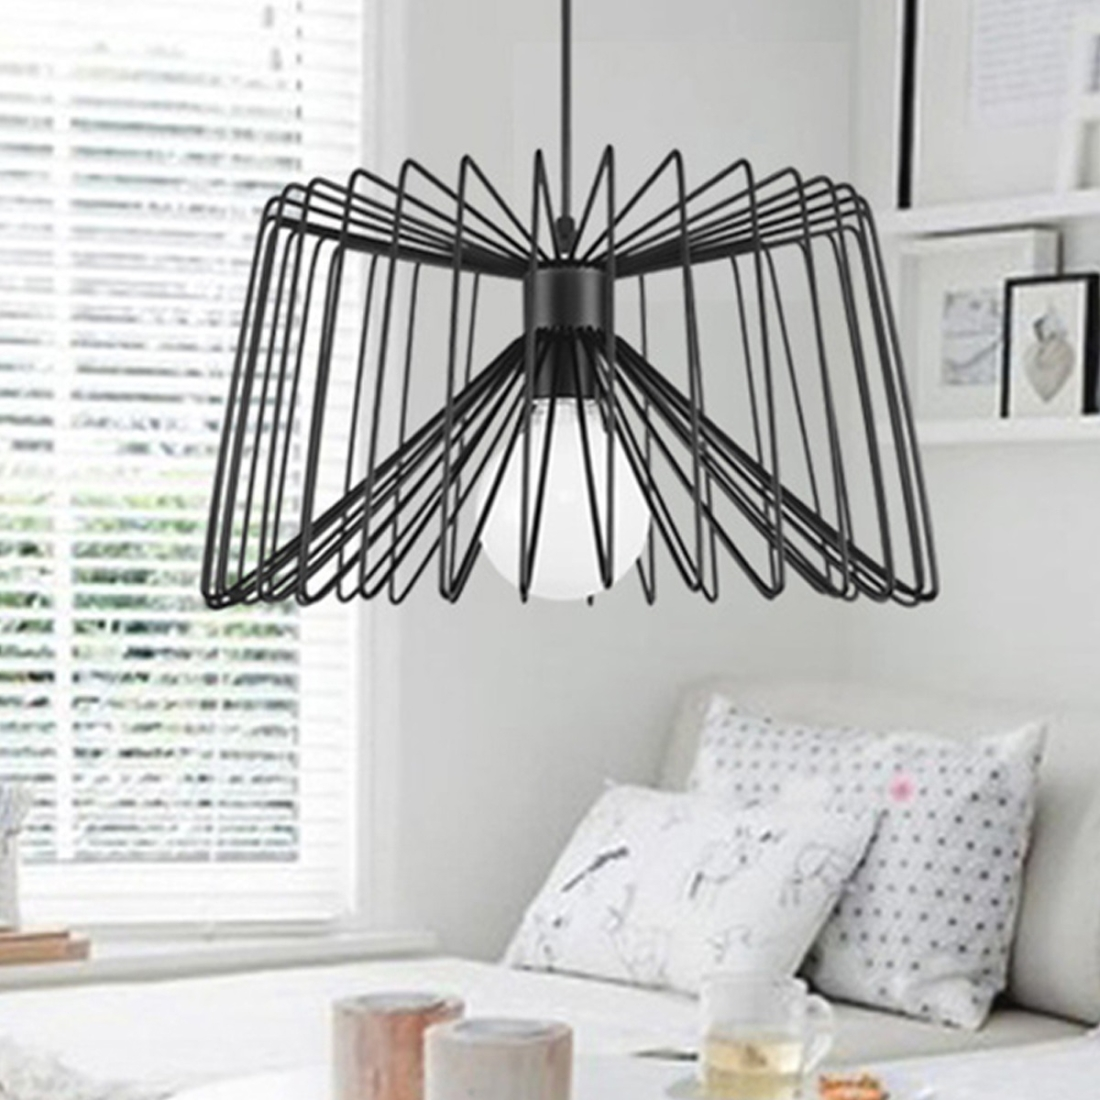 Cool Hanging Lights For Bedroom Ywxlight Nordic Modern Hanging Lamp Creative Iron Art Simple Spider Pendant Light E27 Bulb Perfect For Kitchen Dining Room Bedroom Living Room Cold